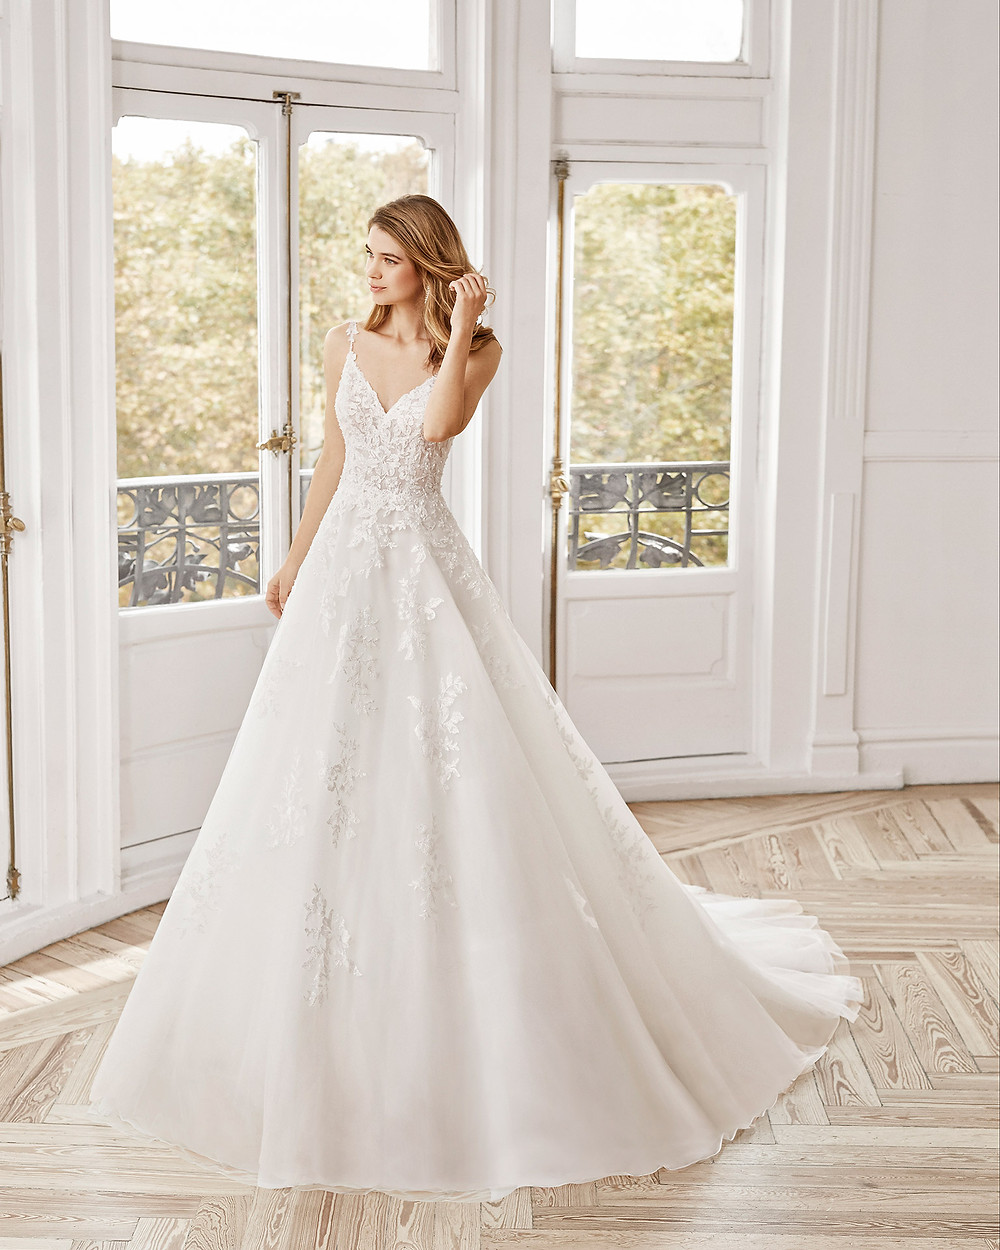 An Aire Barcelona 2020 lace and tulle princess ball gown wedding dress with thin straps